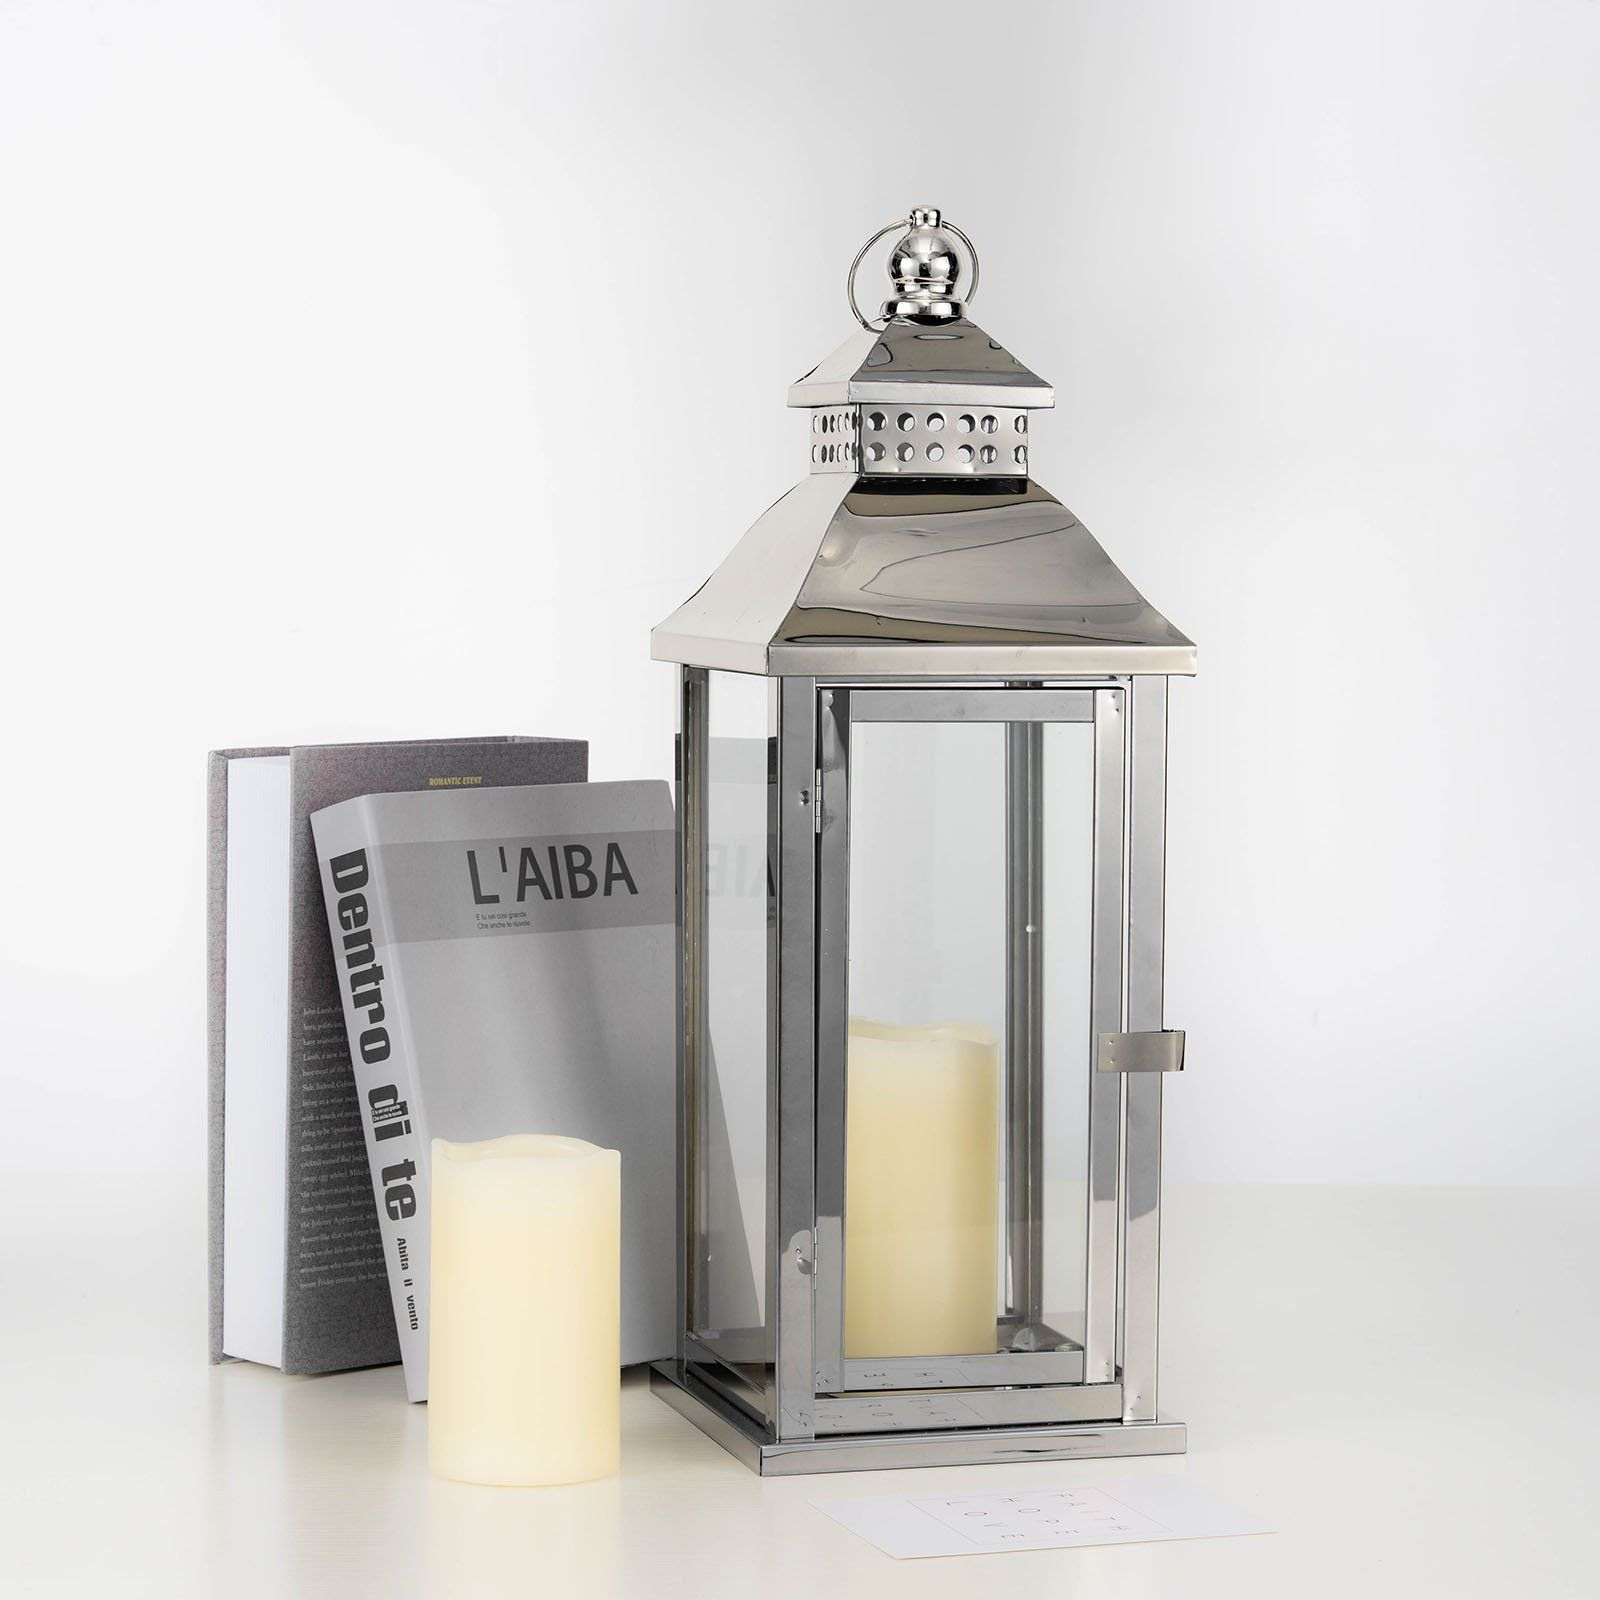 Free 2 Day Shipping Buy Efavormart 19 5 Prism Top Stainless Steel Lantern Candle Holder Tabletop Centerp Metal Lanterns Lantern Candle Holders Candle Holders Outdoor candle lanterns for sale